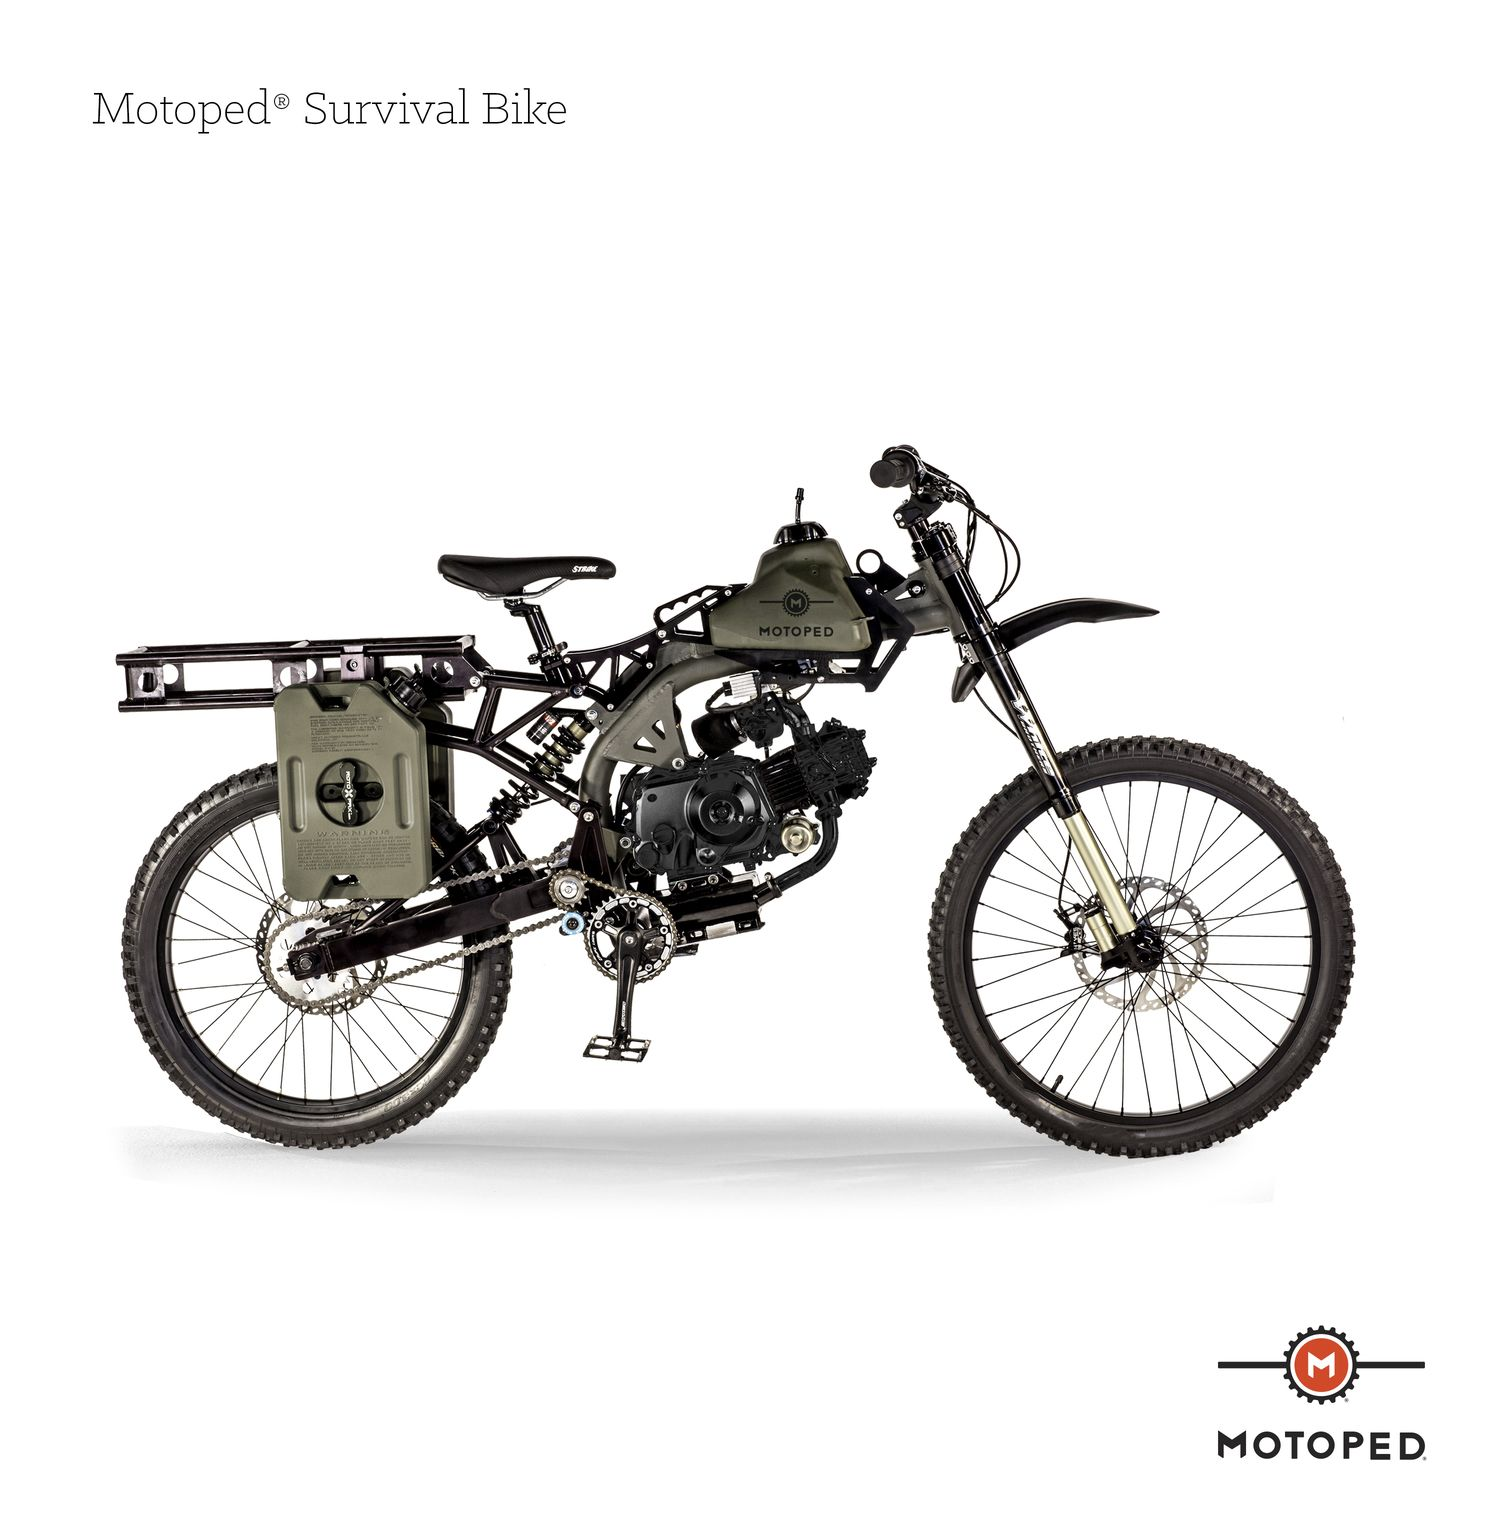 Motoped+Survival+Bike+2 | Survival Tools and Weapons | Pinterest ...